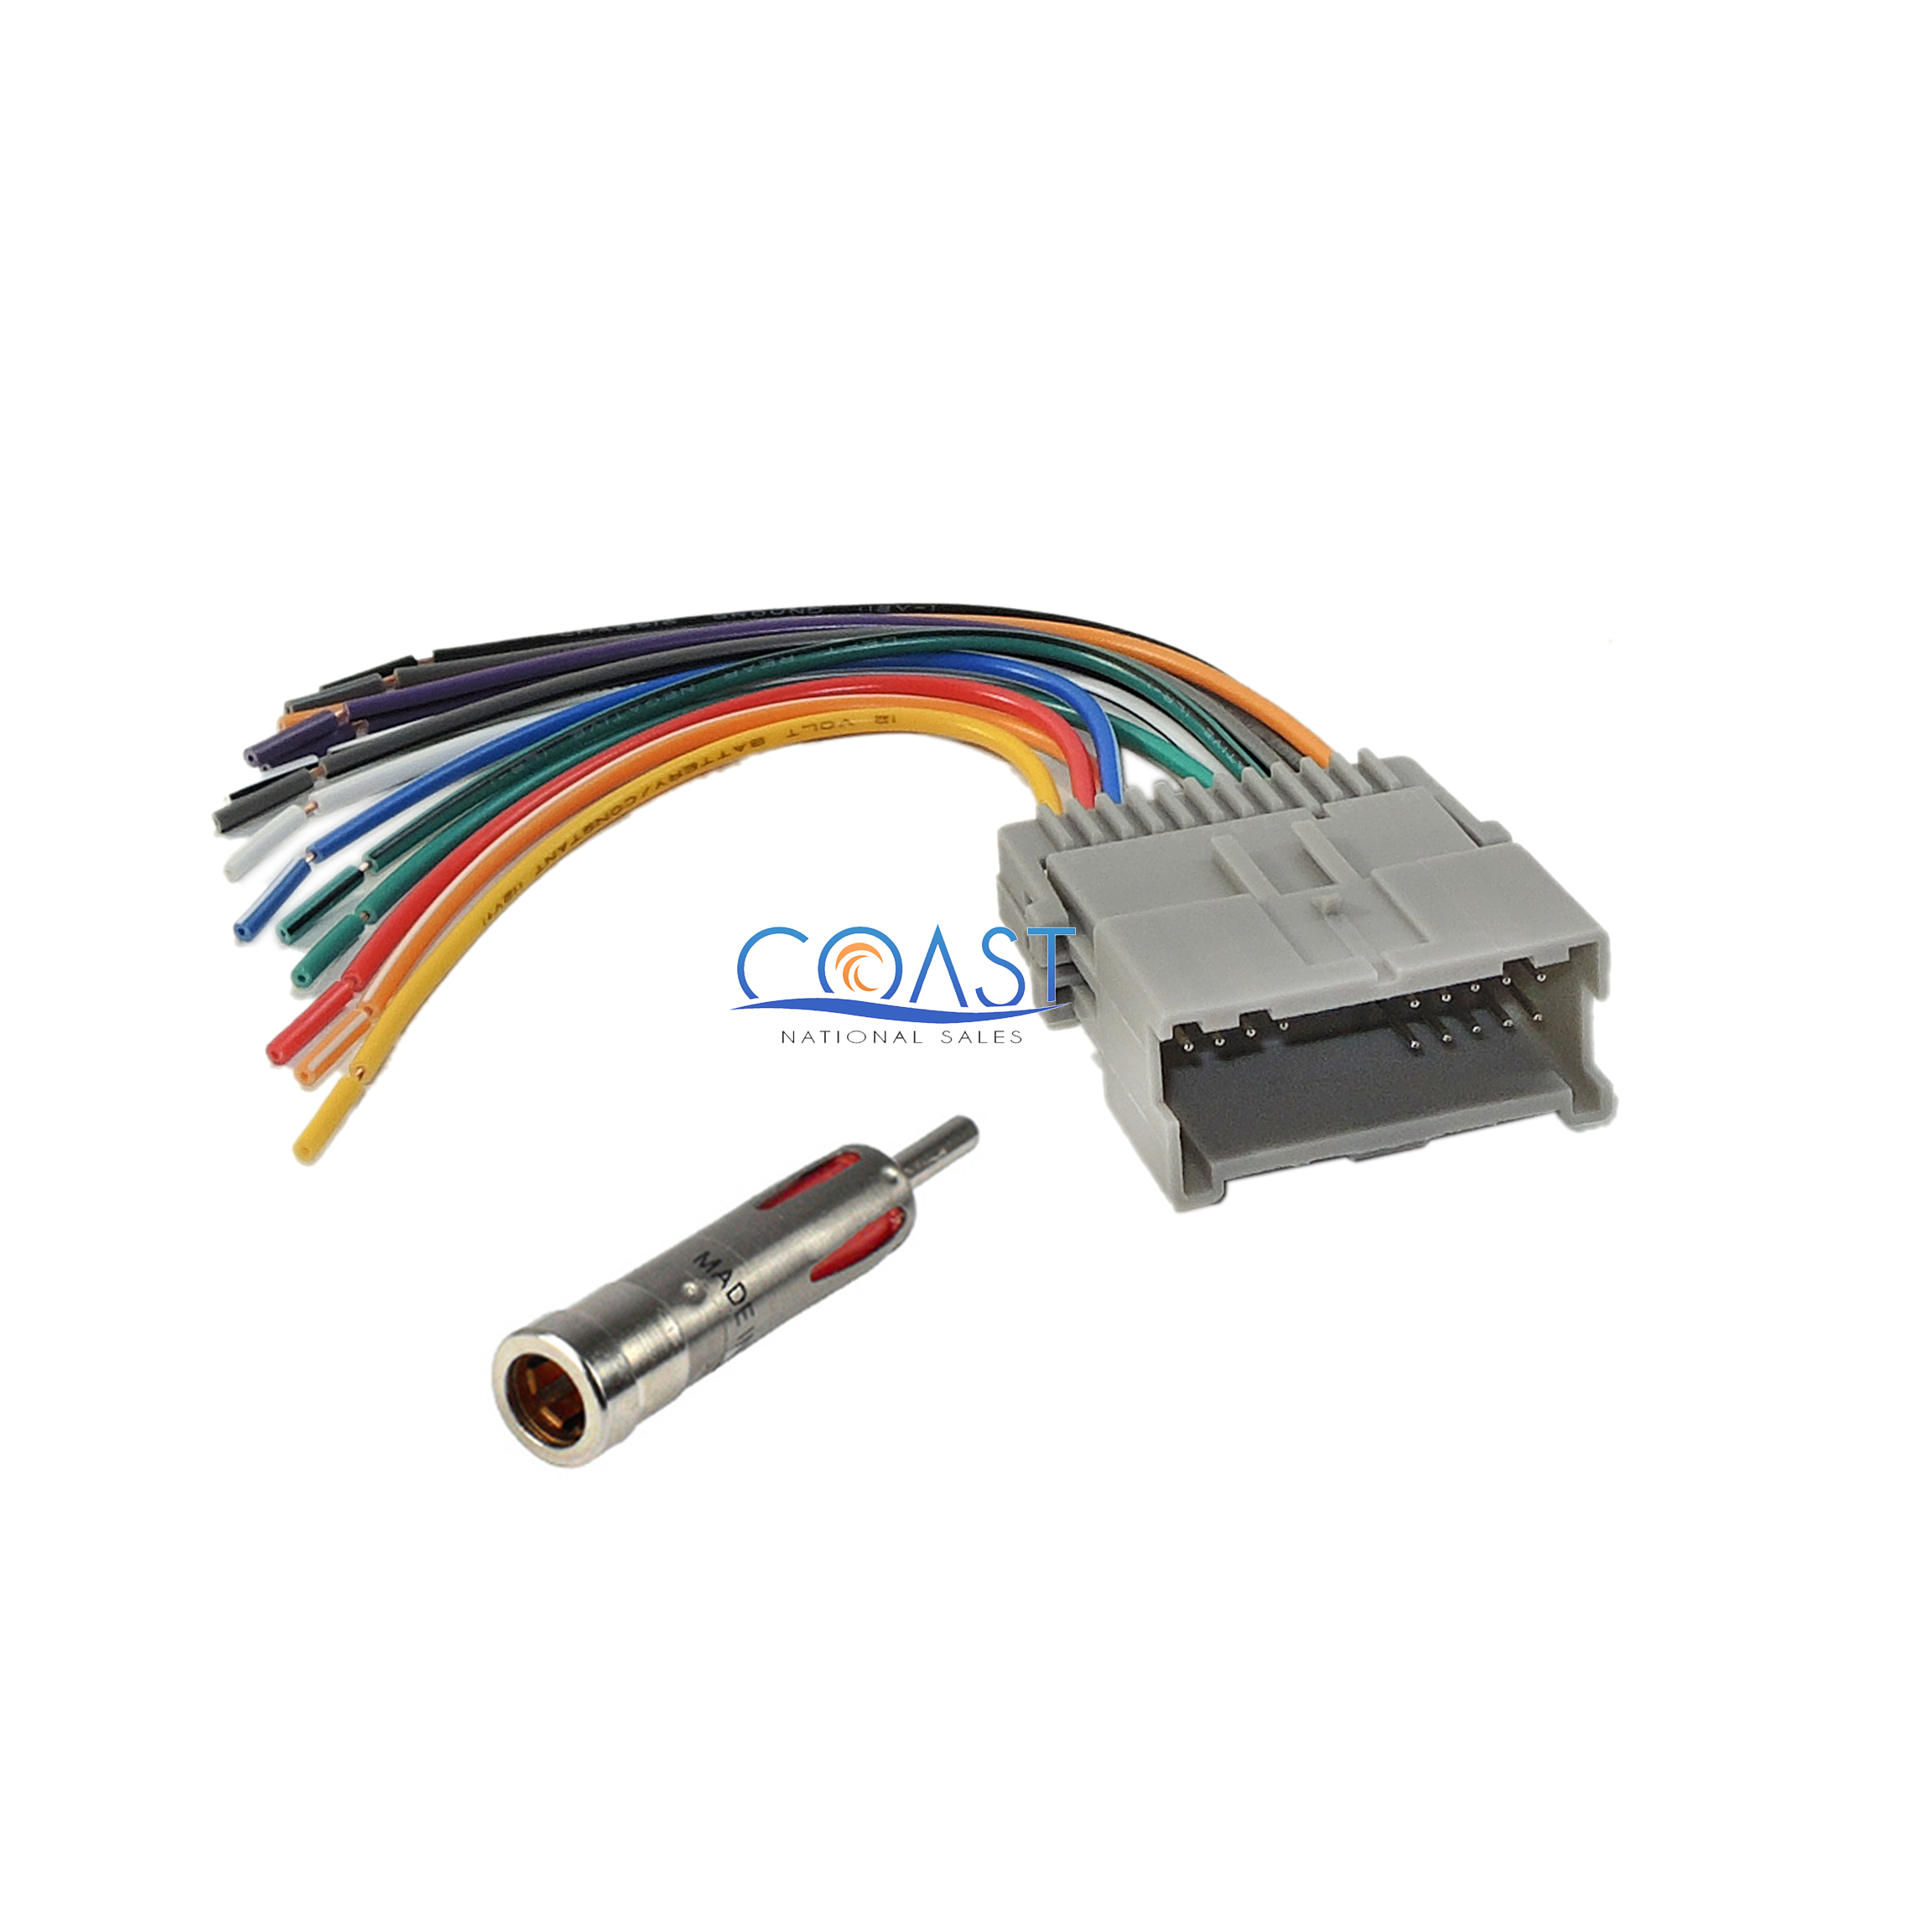 2002 Gmc Radio Wiring | Wiring Diagram  S Radio Wiring Diagram on s10 ignition switch diagram, s10 parts, s10 alternator diagram, s10 steering wheel diagram, s10 fuel pump problems, s10 stereo, s10 transmission diagram, s10 fuel pump diagram, s10 heater diagram, s10 wiring schematic, s10 electrical diagram, s10 fuse diagram, s10 relay diagram, s10 door diagram, s10 headlight diagram,